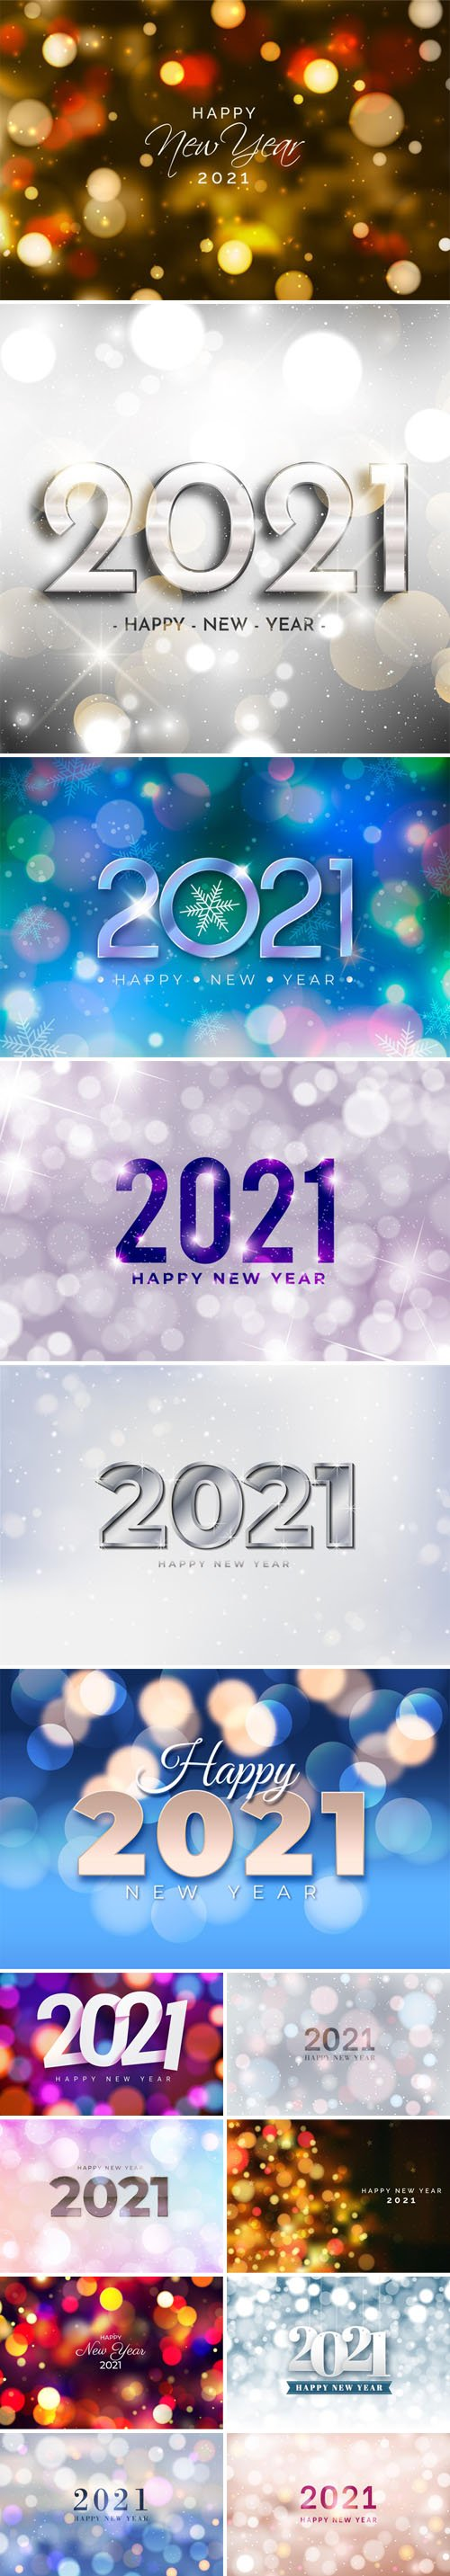 14 Happy New Year 2021 Vector Templates With Blurred Bokeh Lights